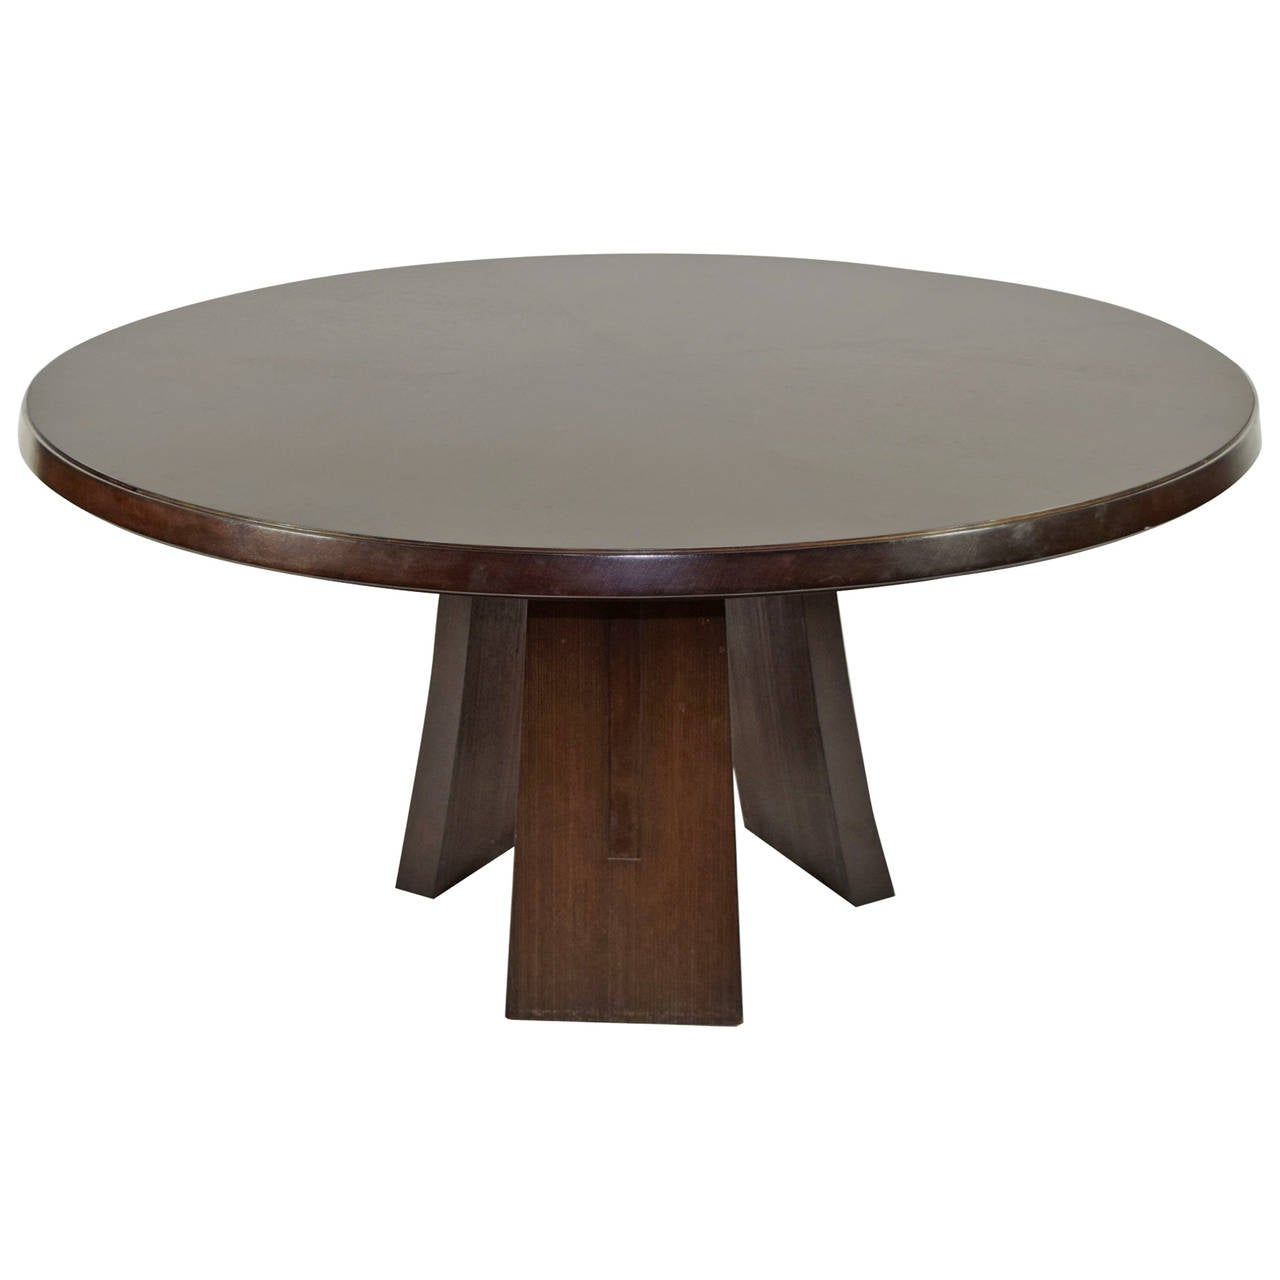 Kenya Dining Table by Axis : 2900622l from 1stdibs.com size 1280 x 1280 jpeg 47kB